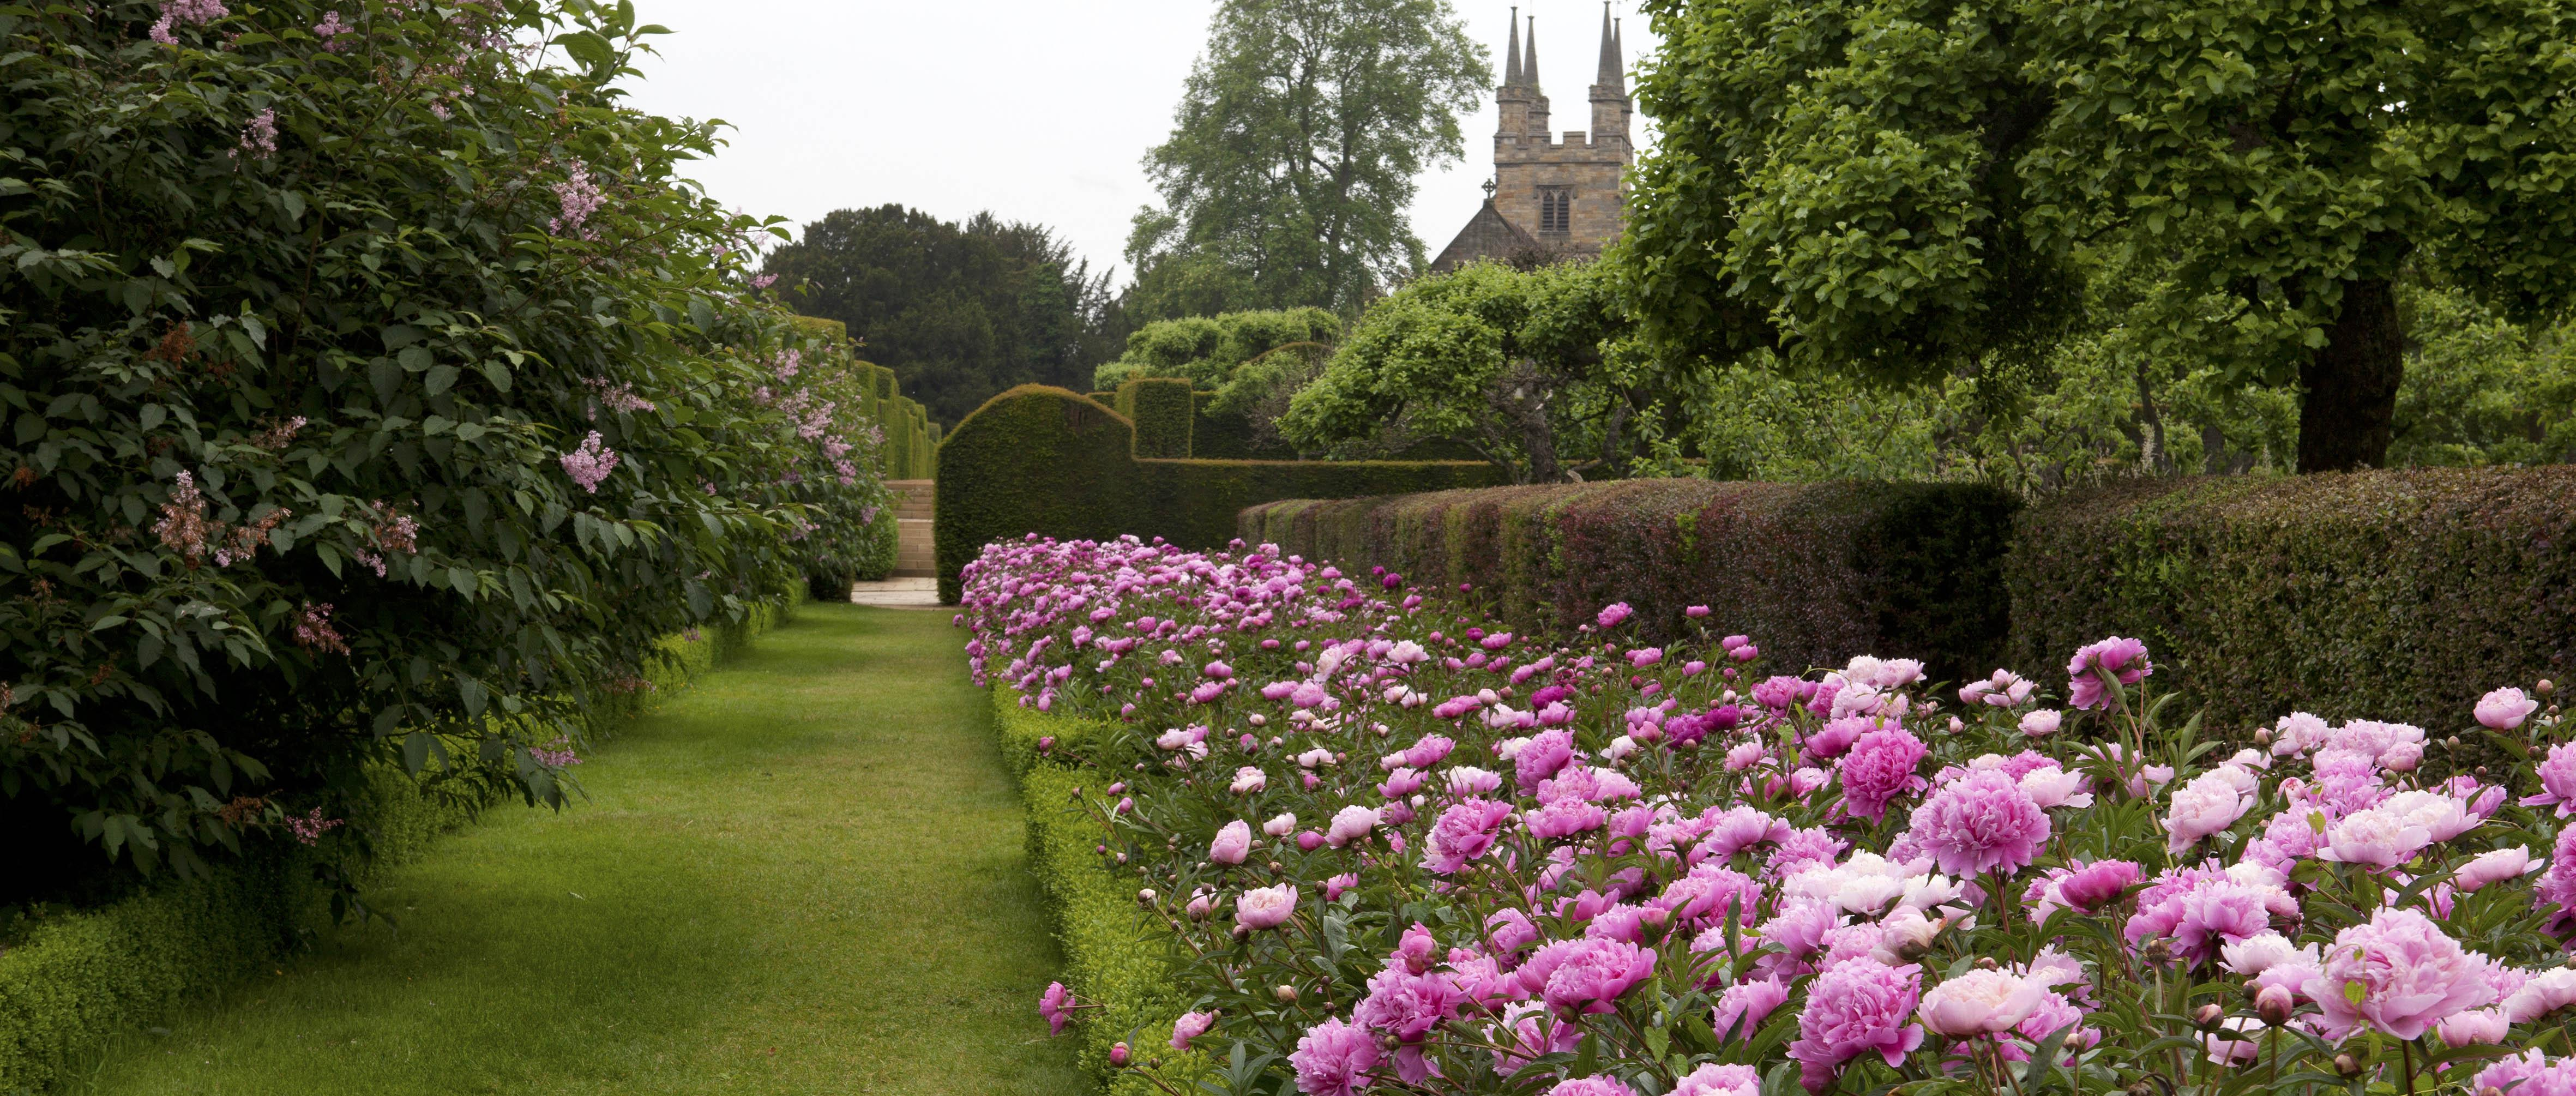 Peonies at Penshurst Place